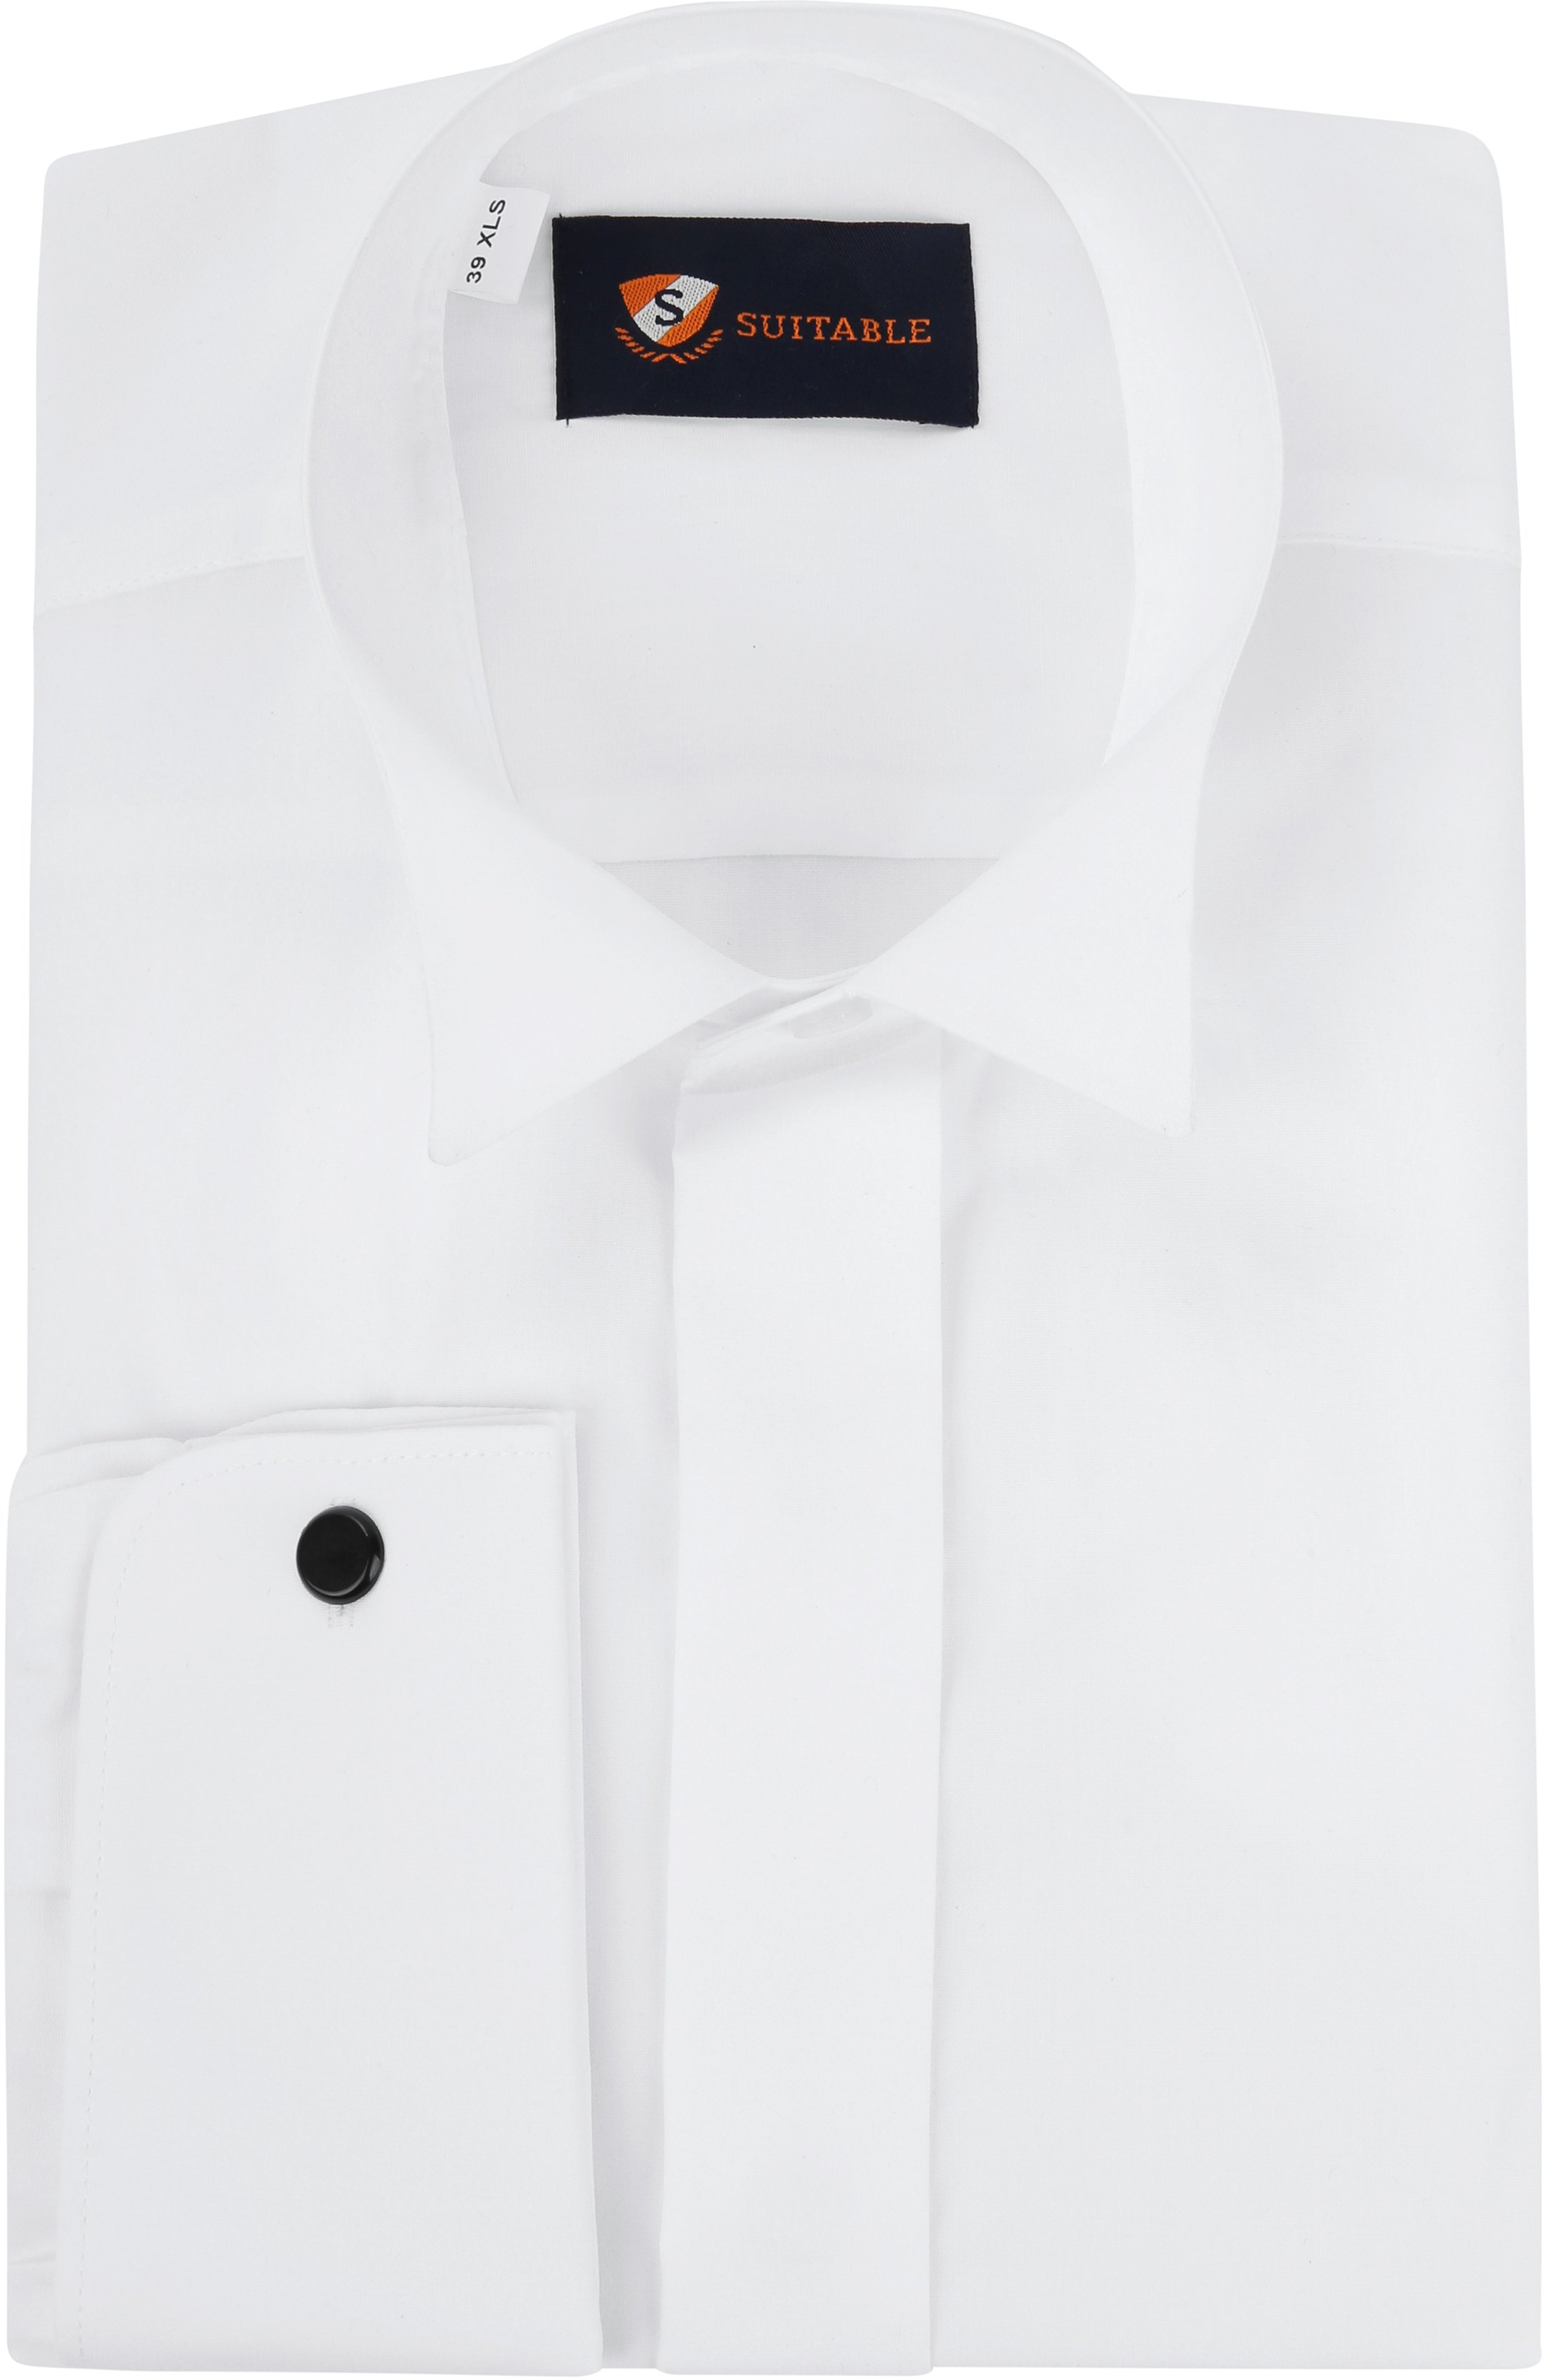 wide range clearance prices best selection of 2019 Tuxedo Shirt High Collar White 800083SU VM Glad order online ...